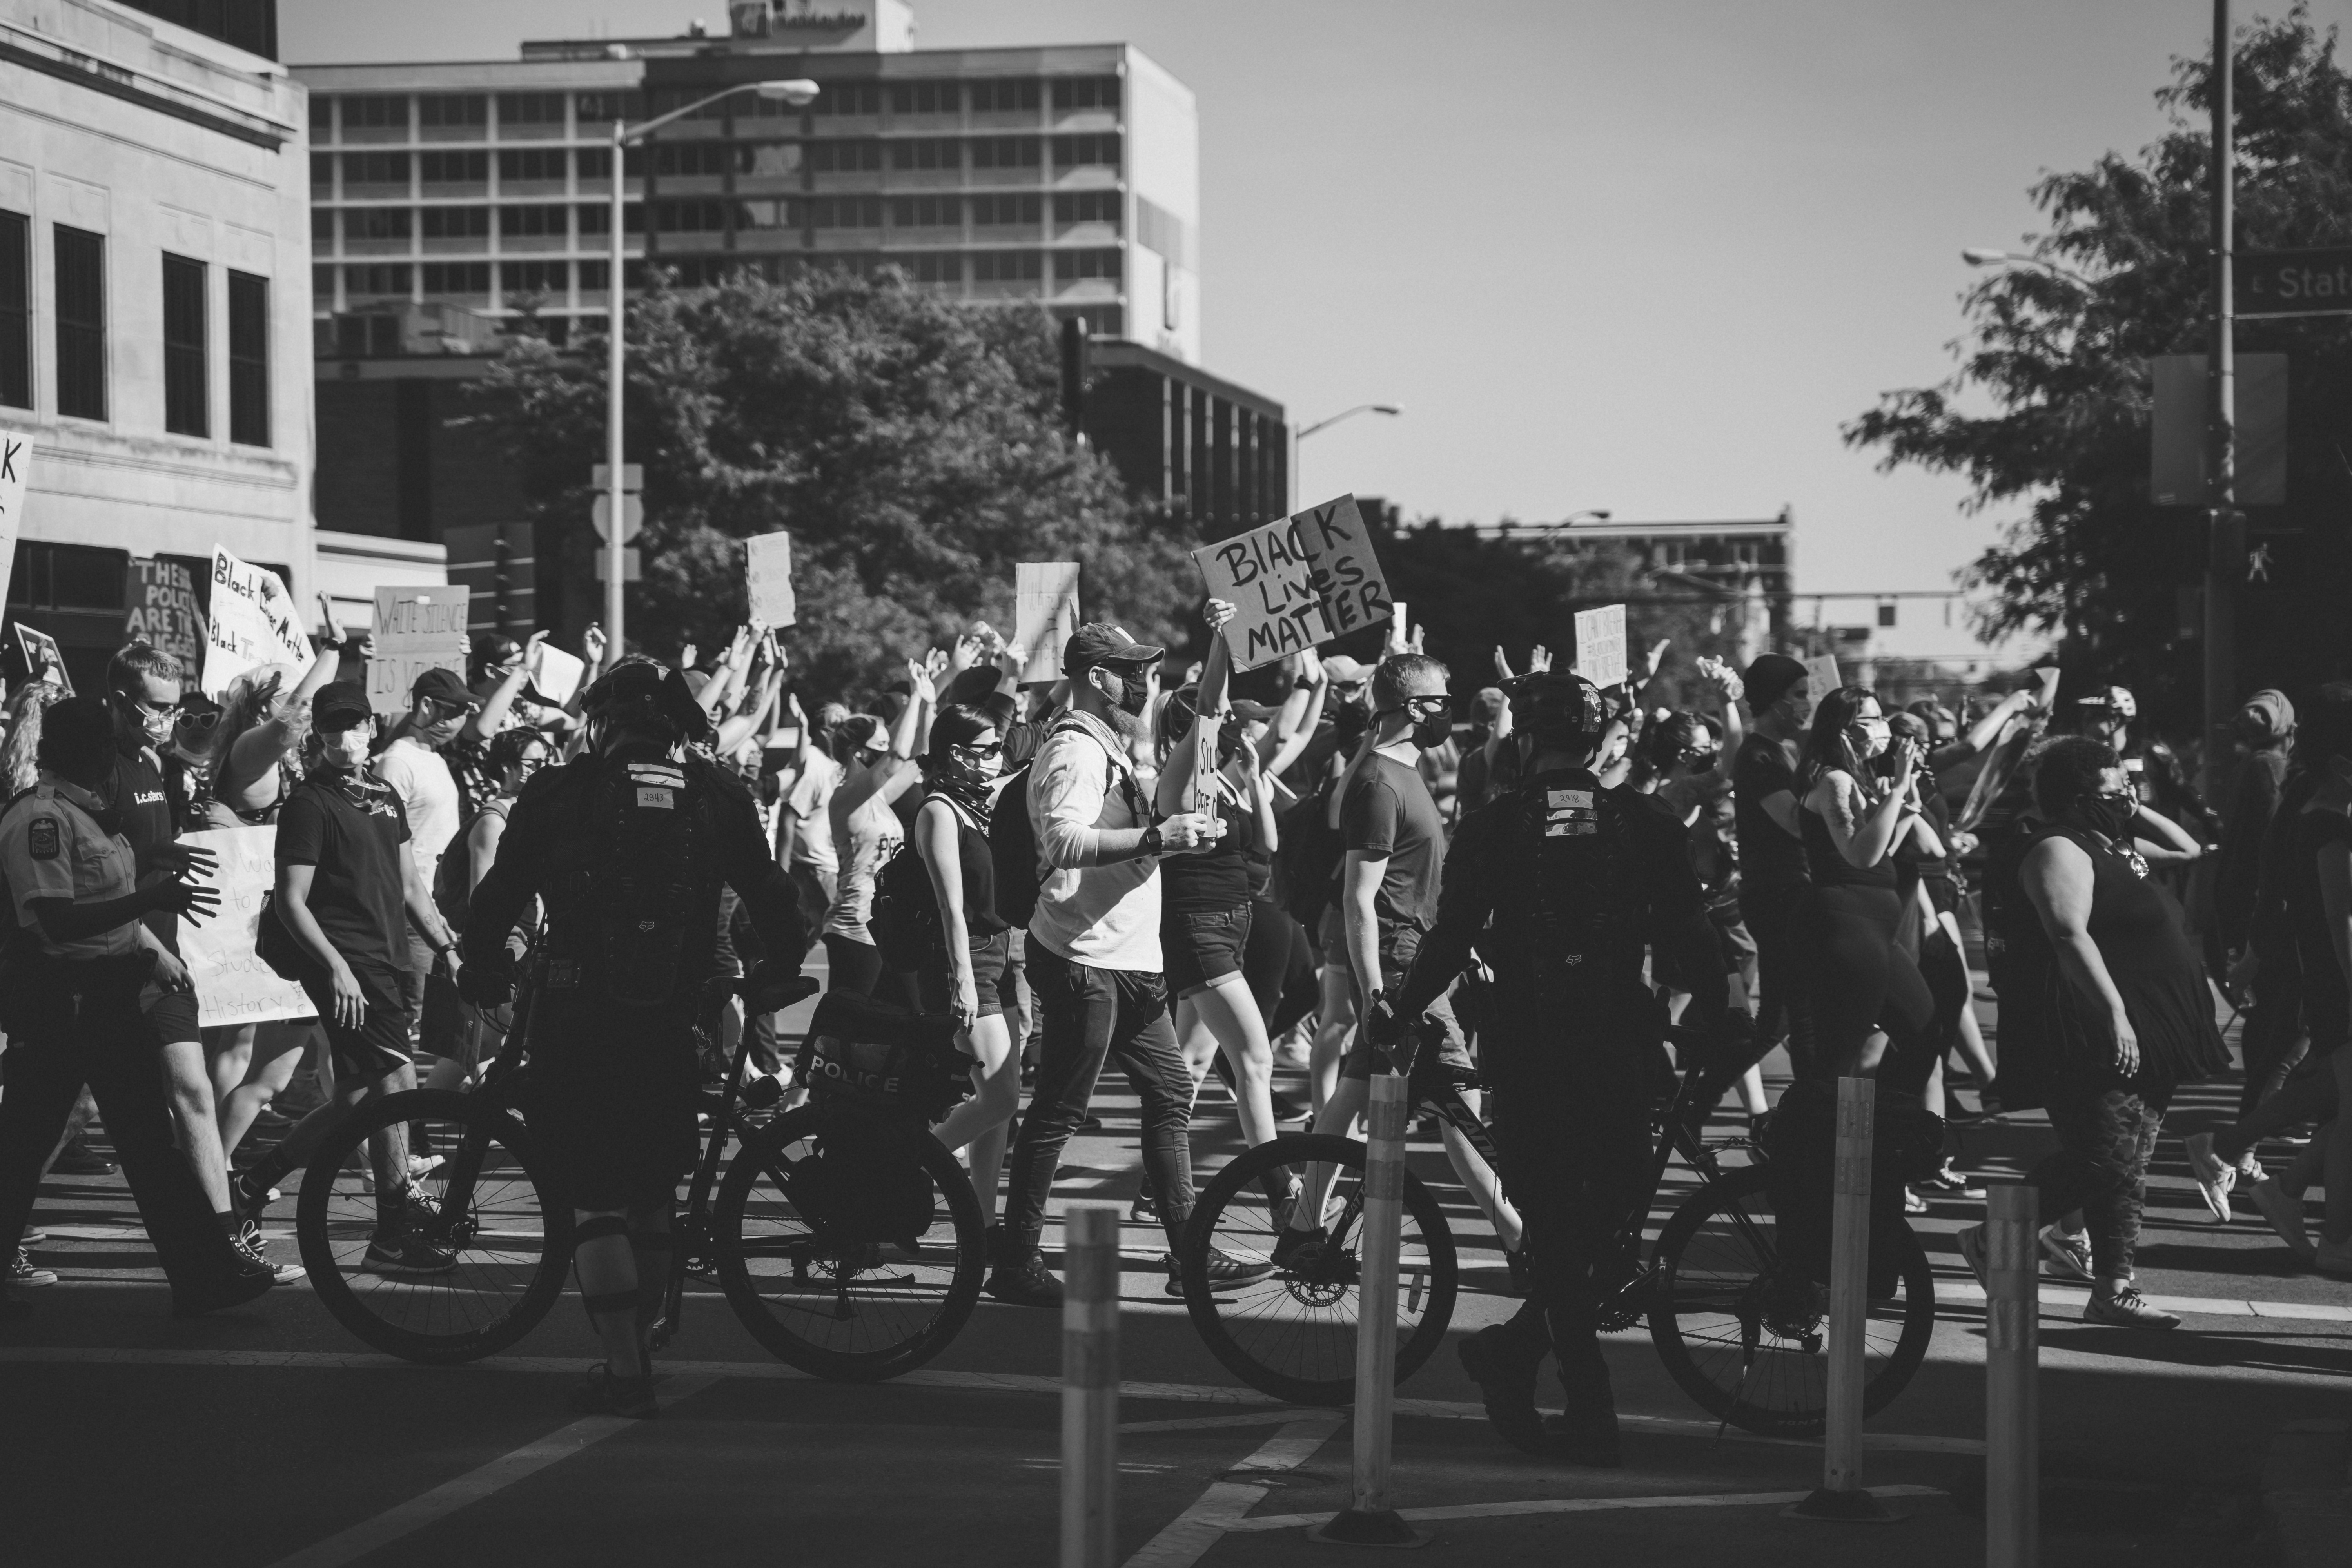 Black and white photograph shows Black Lives Matter protesters walking in one direction (from left to right) and consuming the bottom of half of the image, some of them raise signs. Between the viewer and the protestors are two police officers standing next to their bicycles with their backs turned to the viewer. The top half of the fame shows the sky, trees, and the tops of buildings.